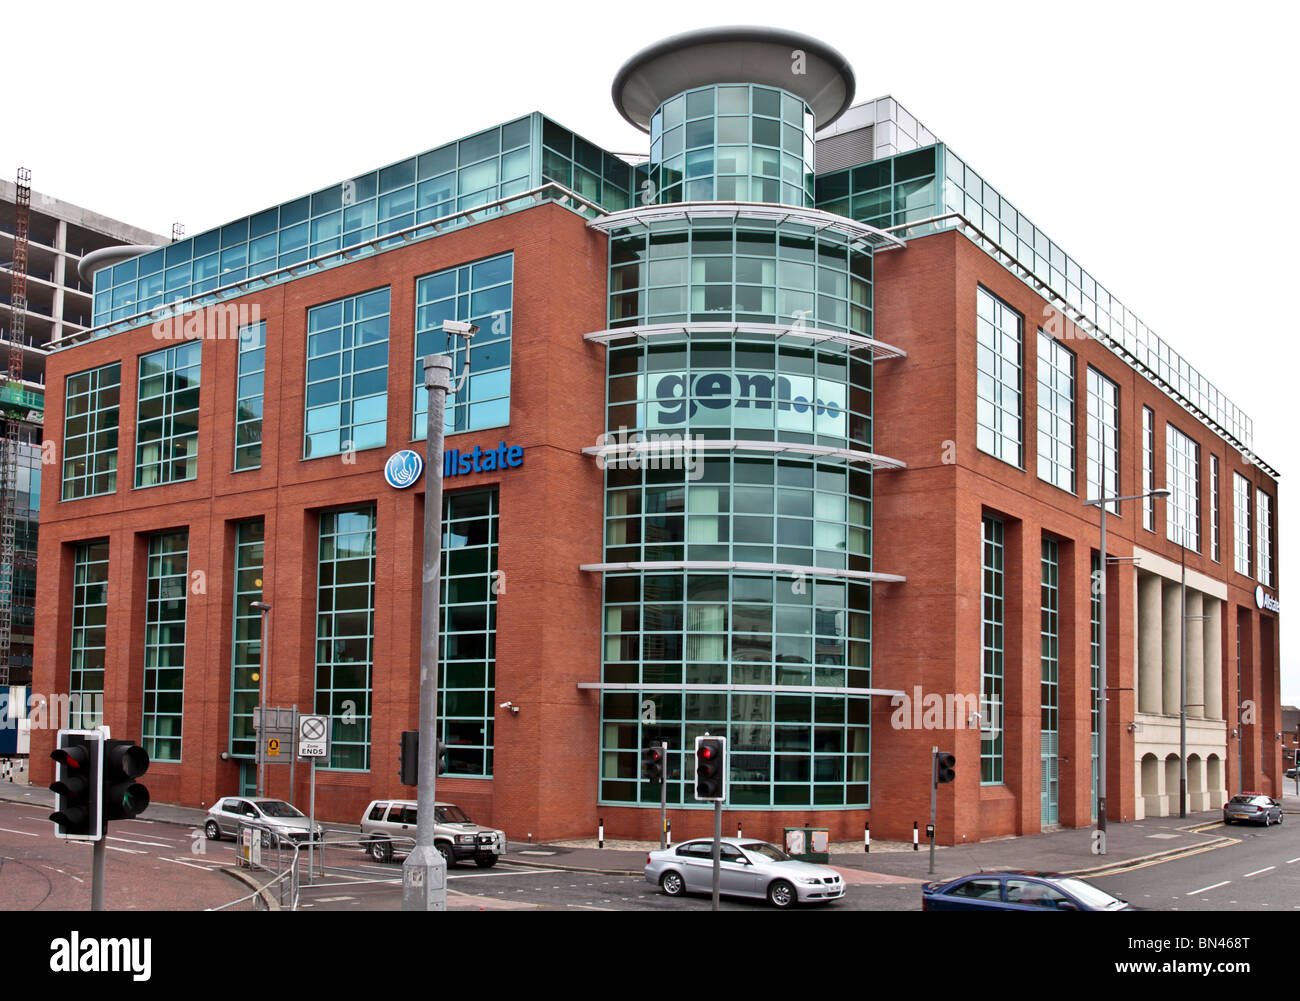 The business premises (since 2002) of the software and technology company Allstate Northern Ireland in Lanyon Place, - Stock Image